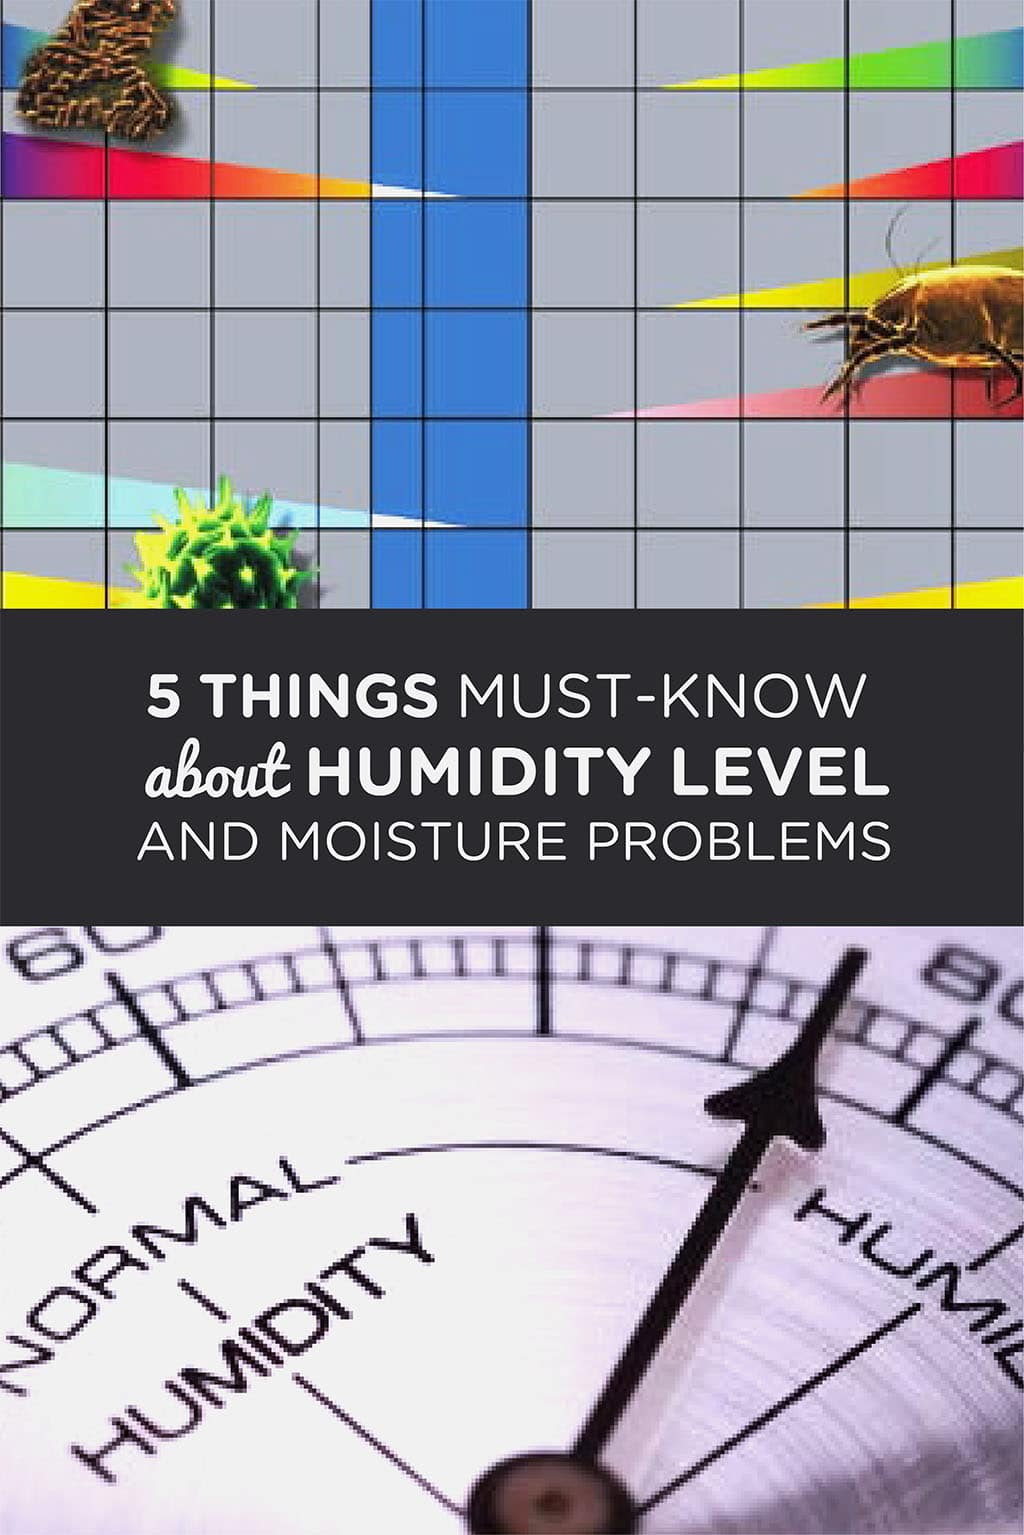 5 things must-know about Humidity Level and Moisture Problems